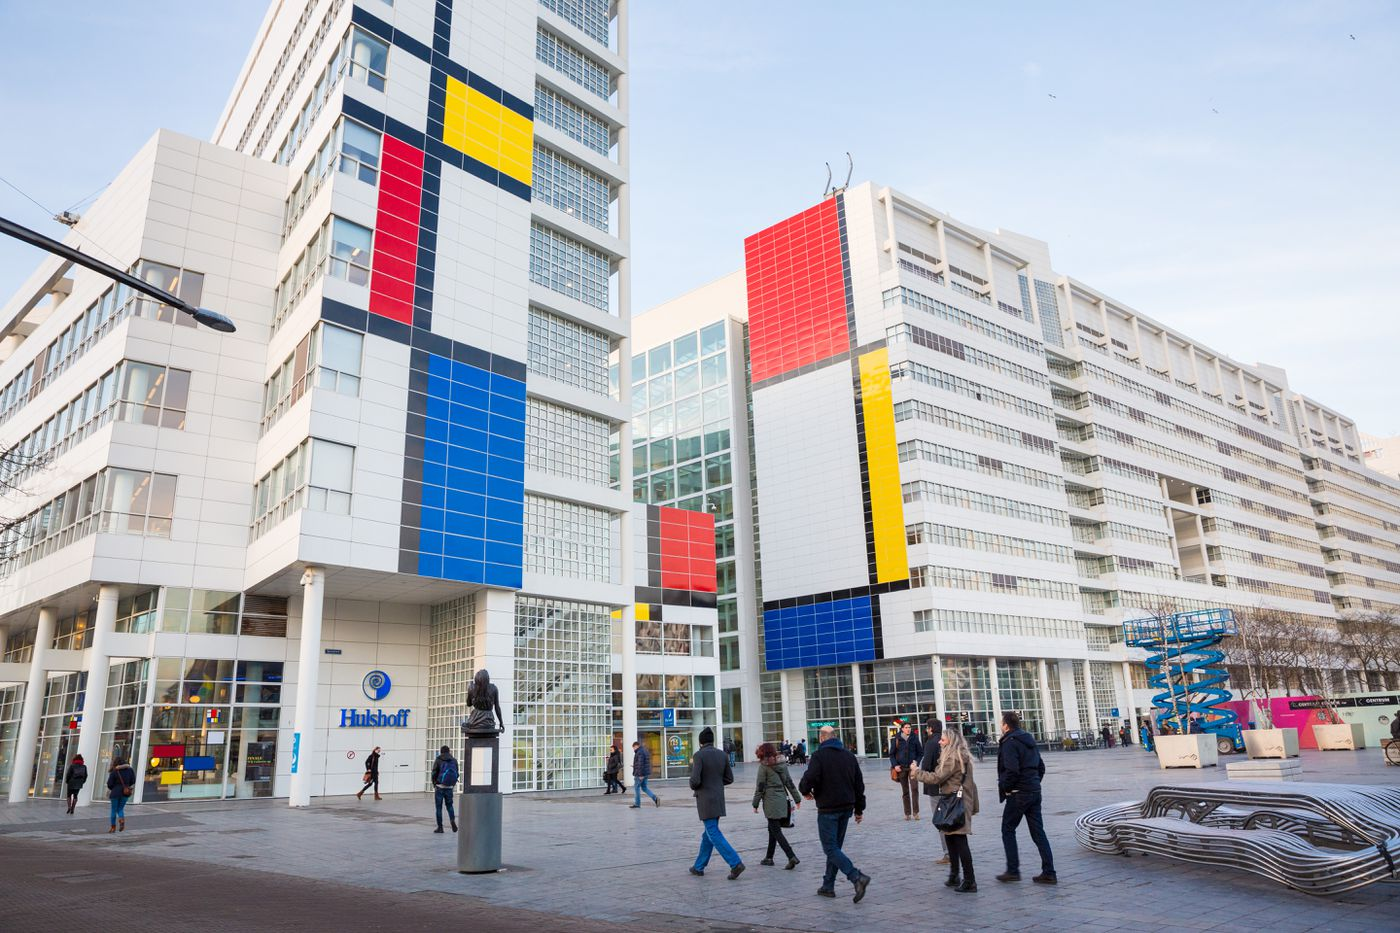 Dutch city hall turned into big Mondrian painting